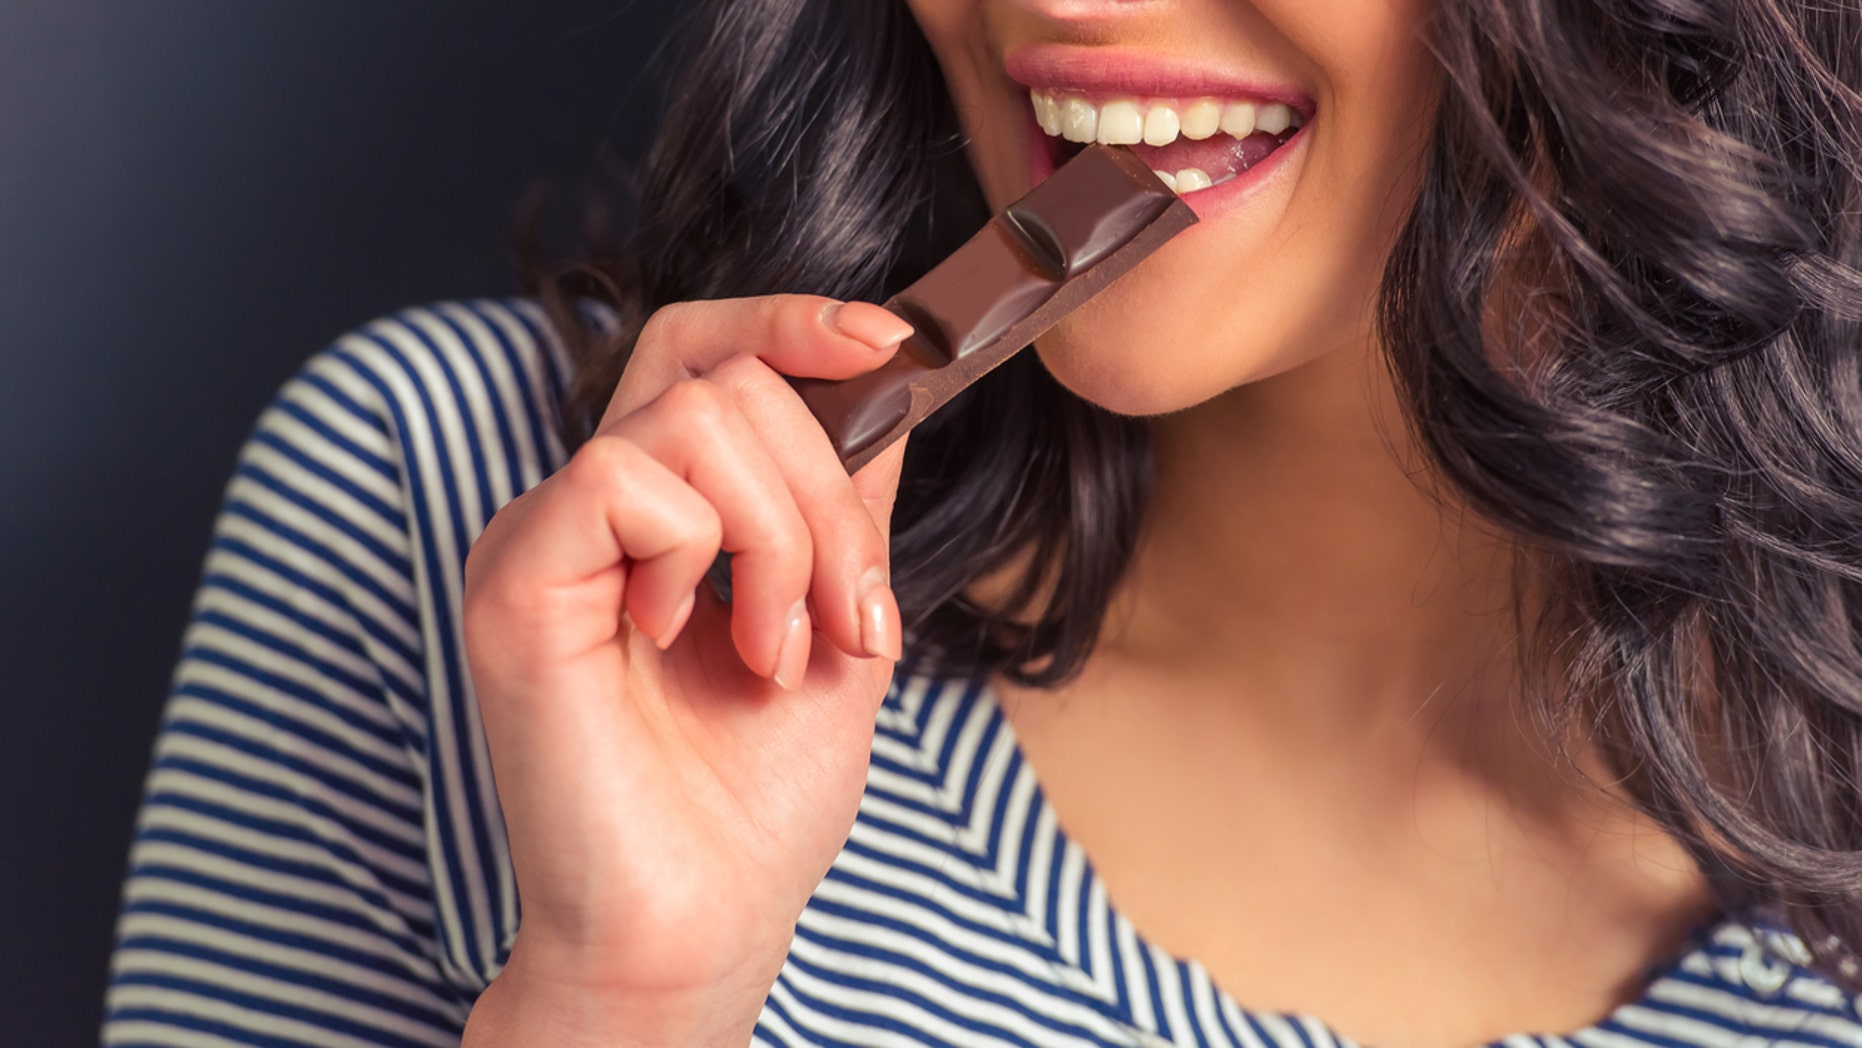 Cropped image of attractive girl eating chocolate and smiling, against dark background